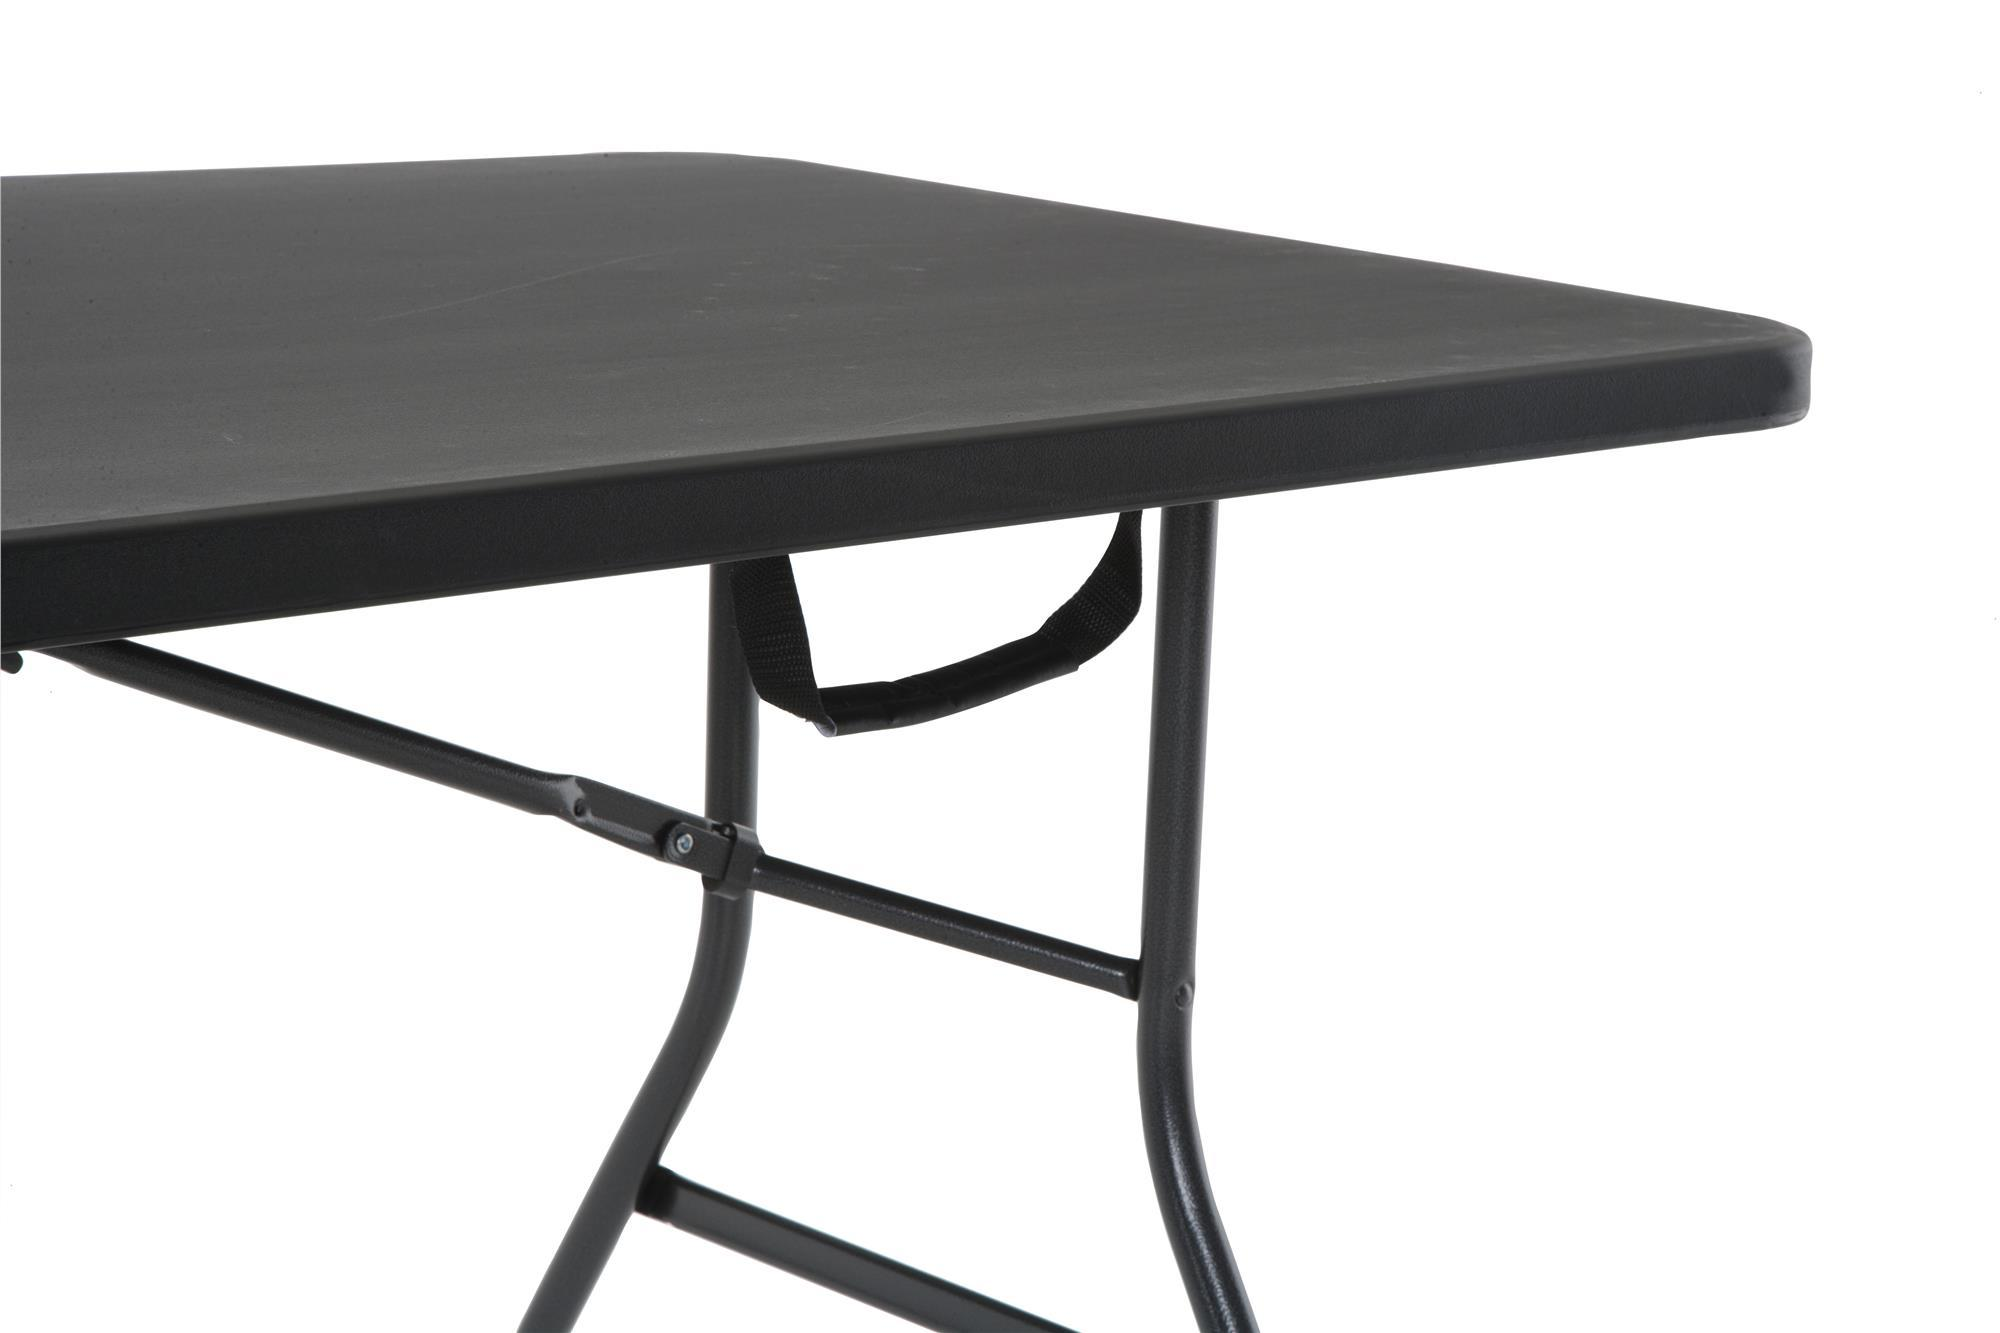 Cosco products centerfold folding table 6 feet black for Table 6 feet